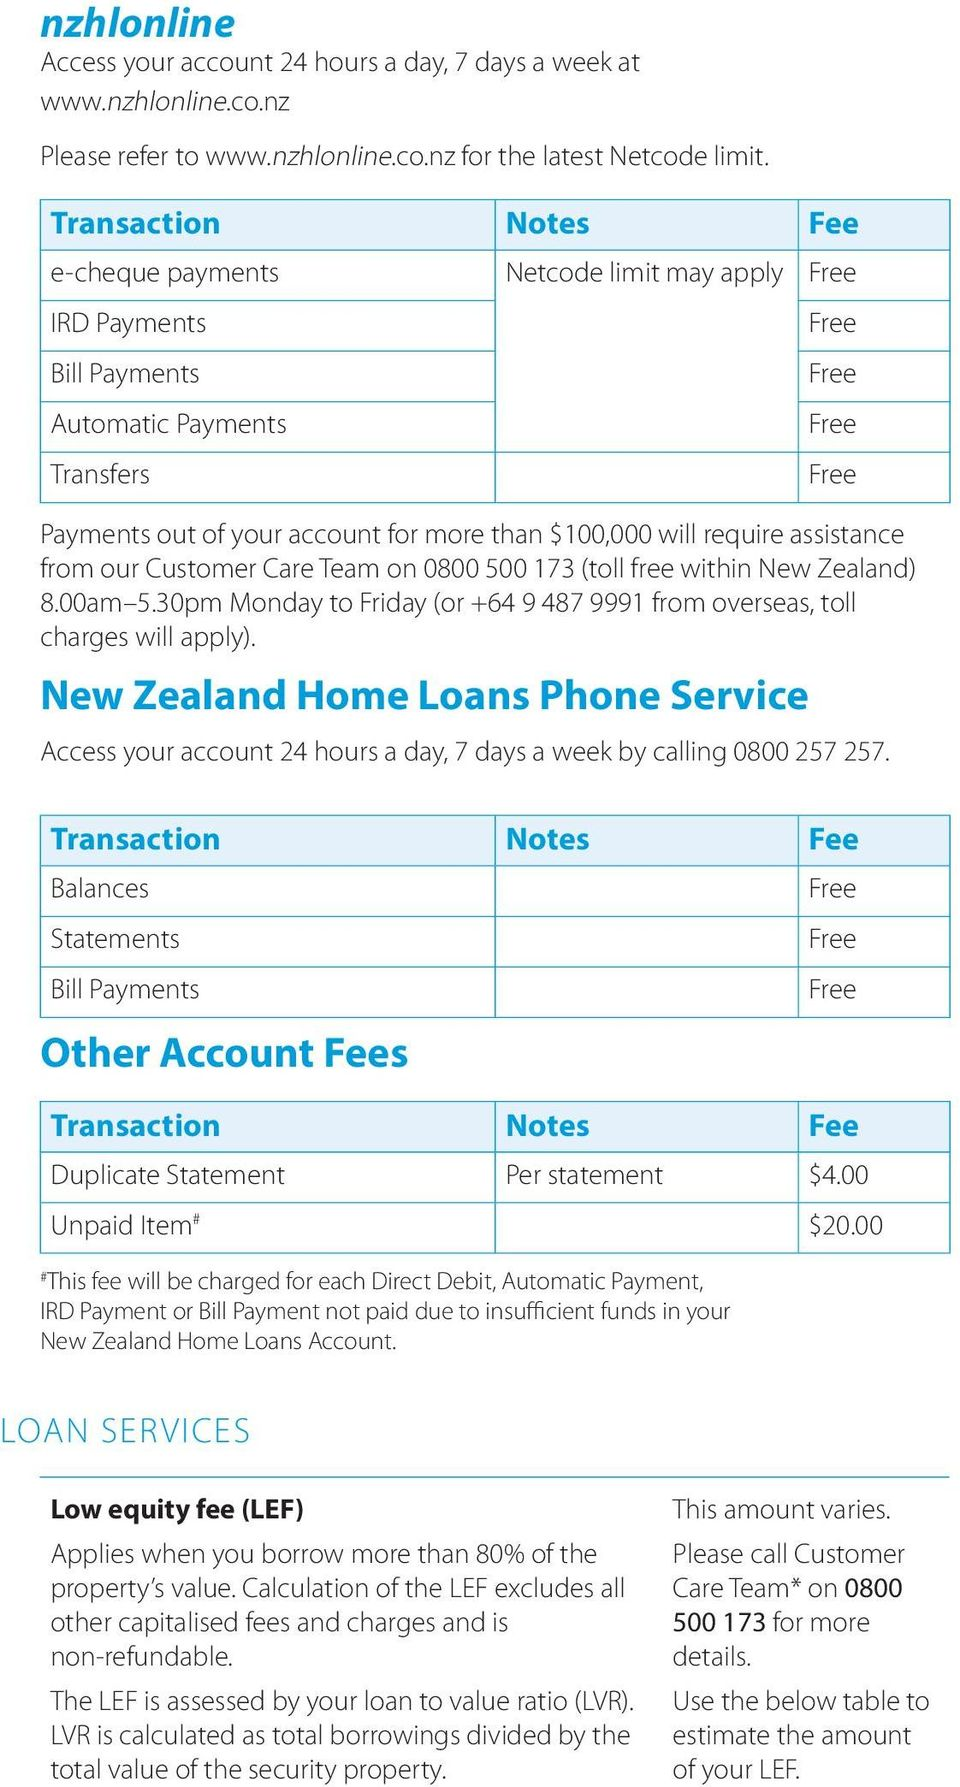 from our Customer Care Team on 0800 500 173 (toll free within New Zealand) 8.00am 5.30pm Monday to Friday (or +64 9 487 9991 from overseas, toll charges will apply).